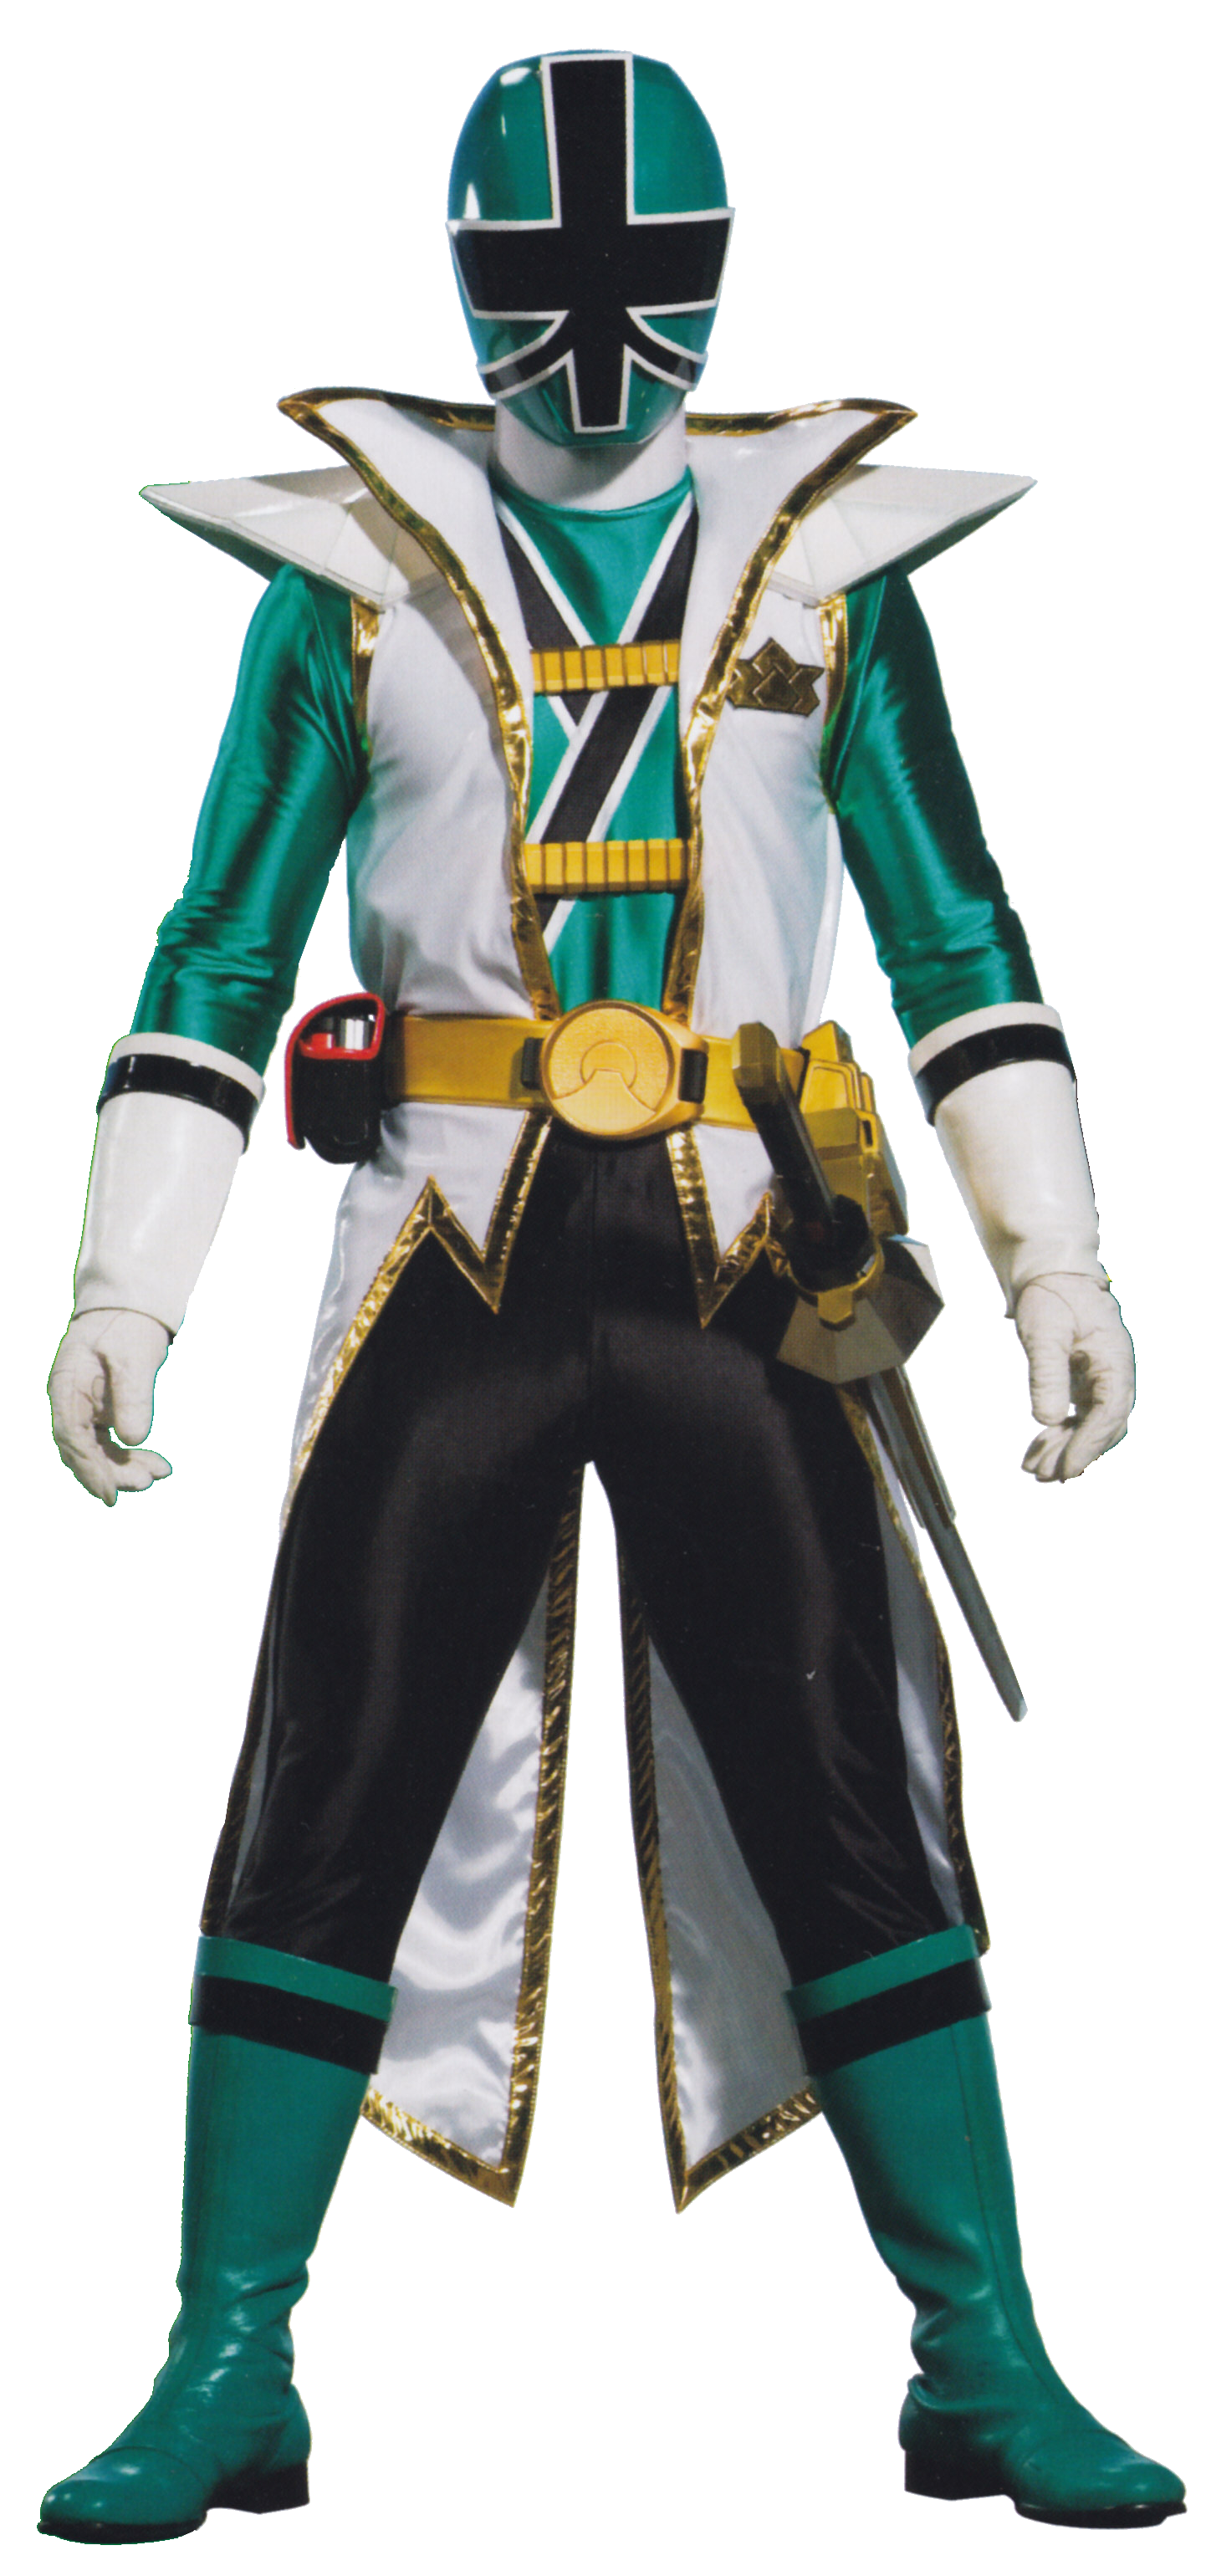 I searched for Power Rangers Super Samurai Green Ranger images on Bing and found this from  sc 1 st  Pinterest & I searched for Power Rangers Super Samurai Green Ranger images on ...